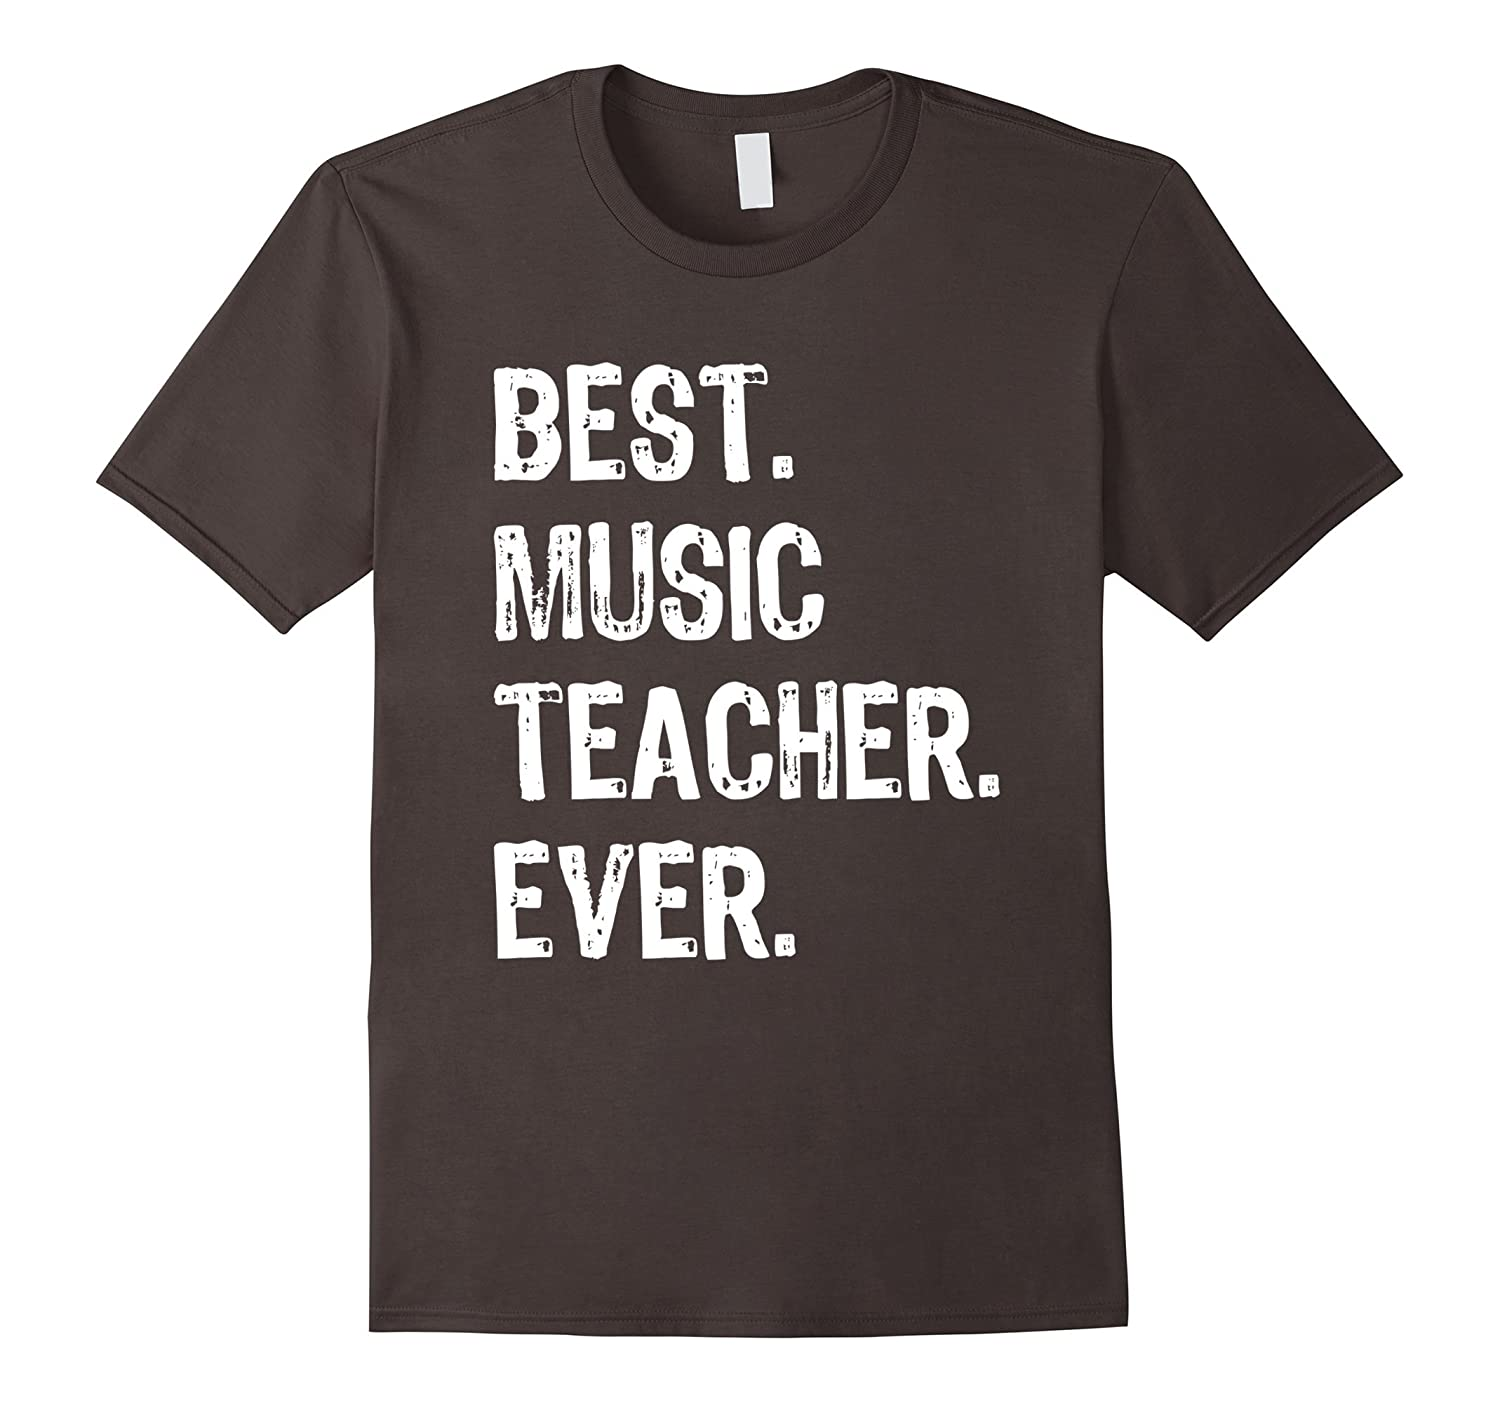 Best music teacher ever t shirt td teedep for Best house music ever